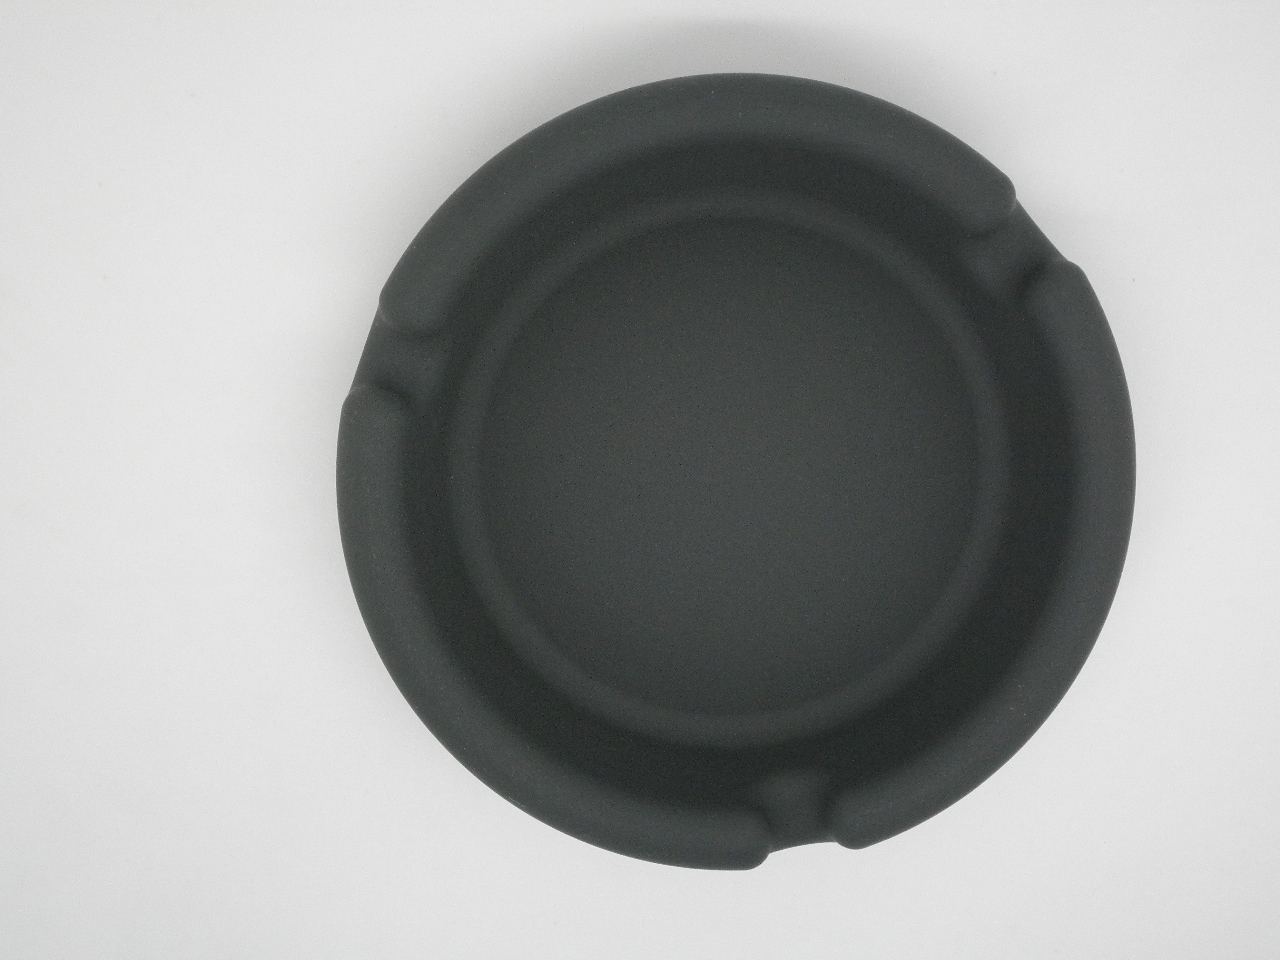 http://www.refinehksilicone.cn/data/images/product/20180417101650_793.JPG